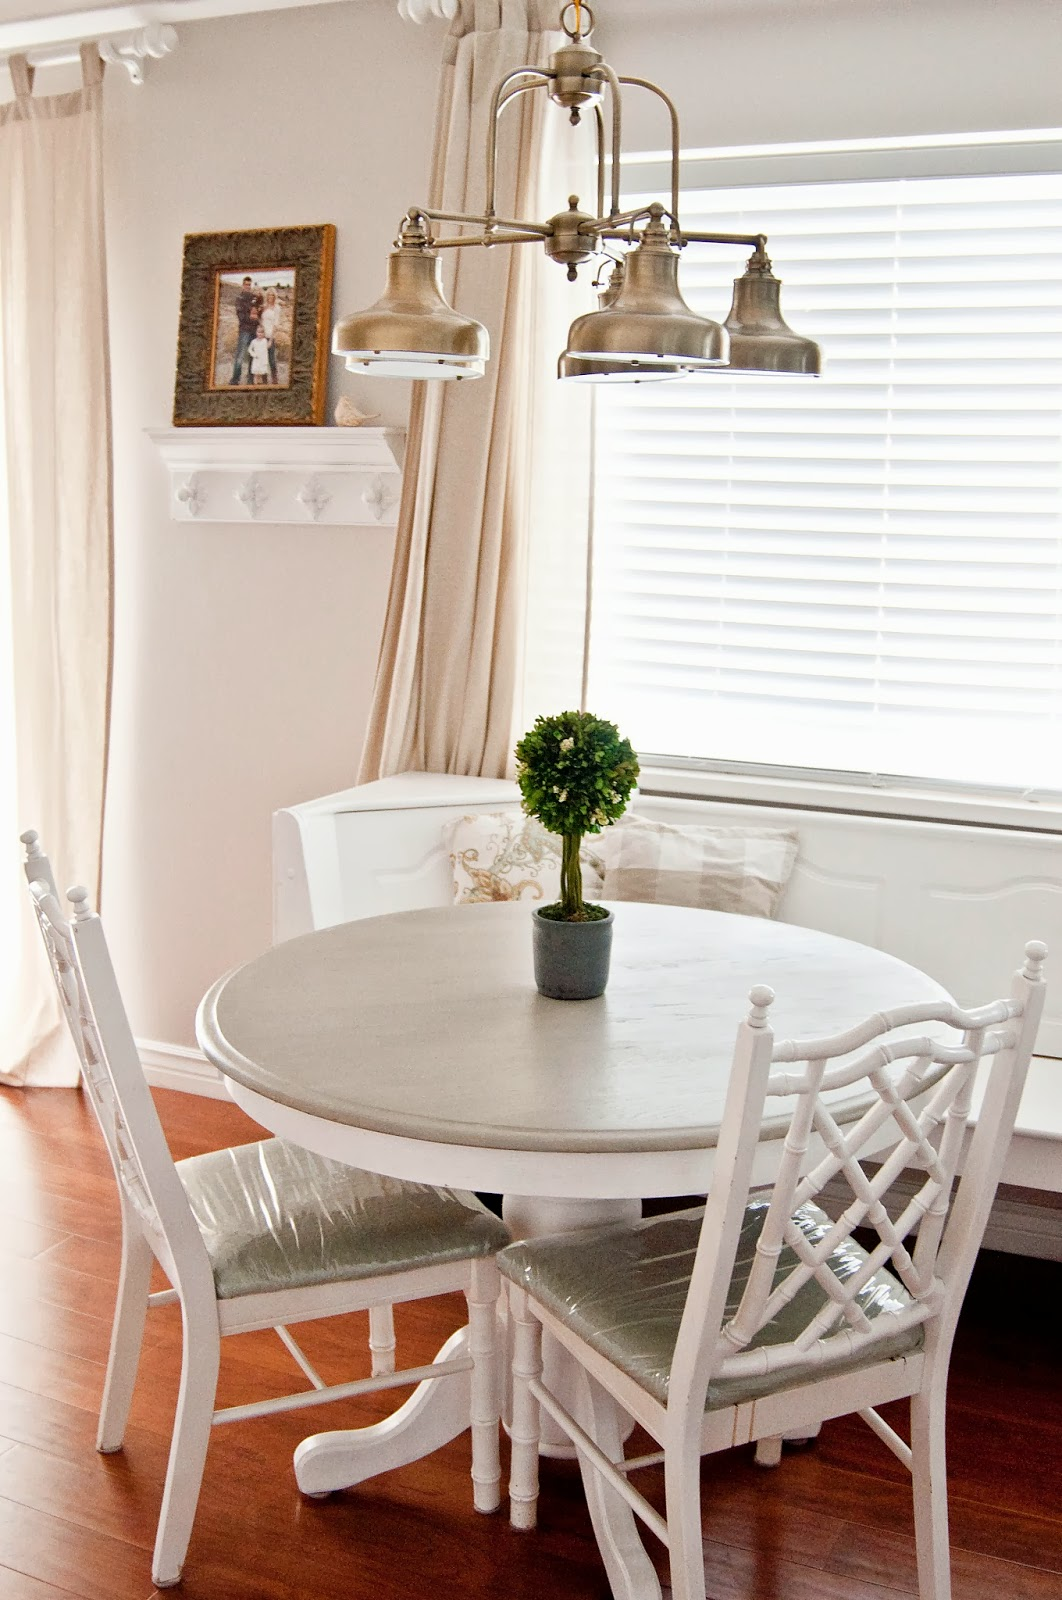 A Few of My Favorite Things My DIY Breakfast Nook